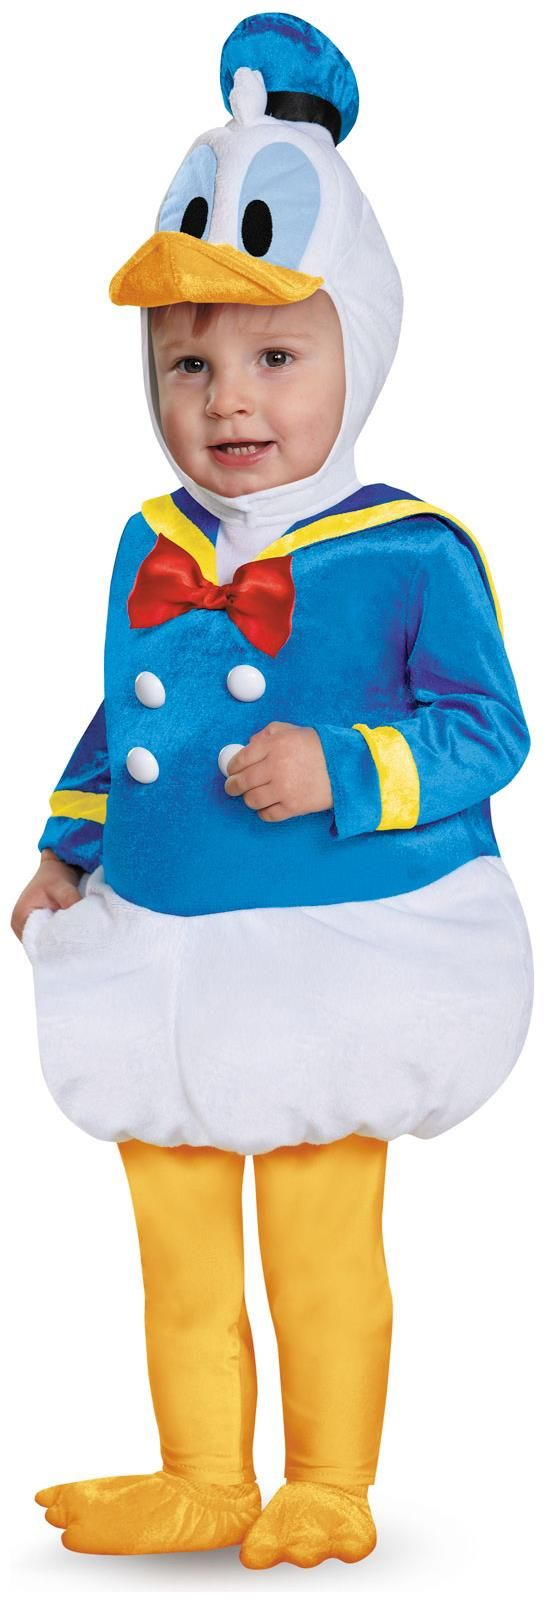 PartyBell.com - Donald Duck Prestige #Toddler Costume